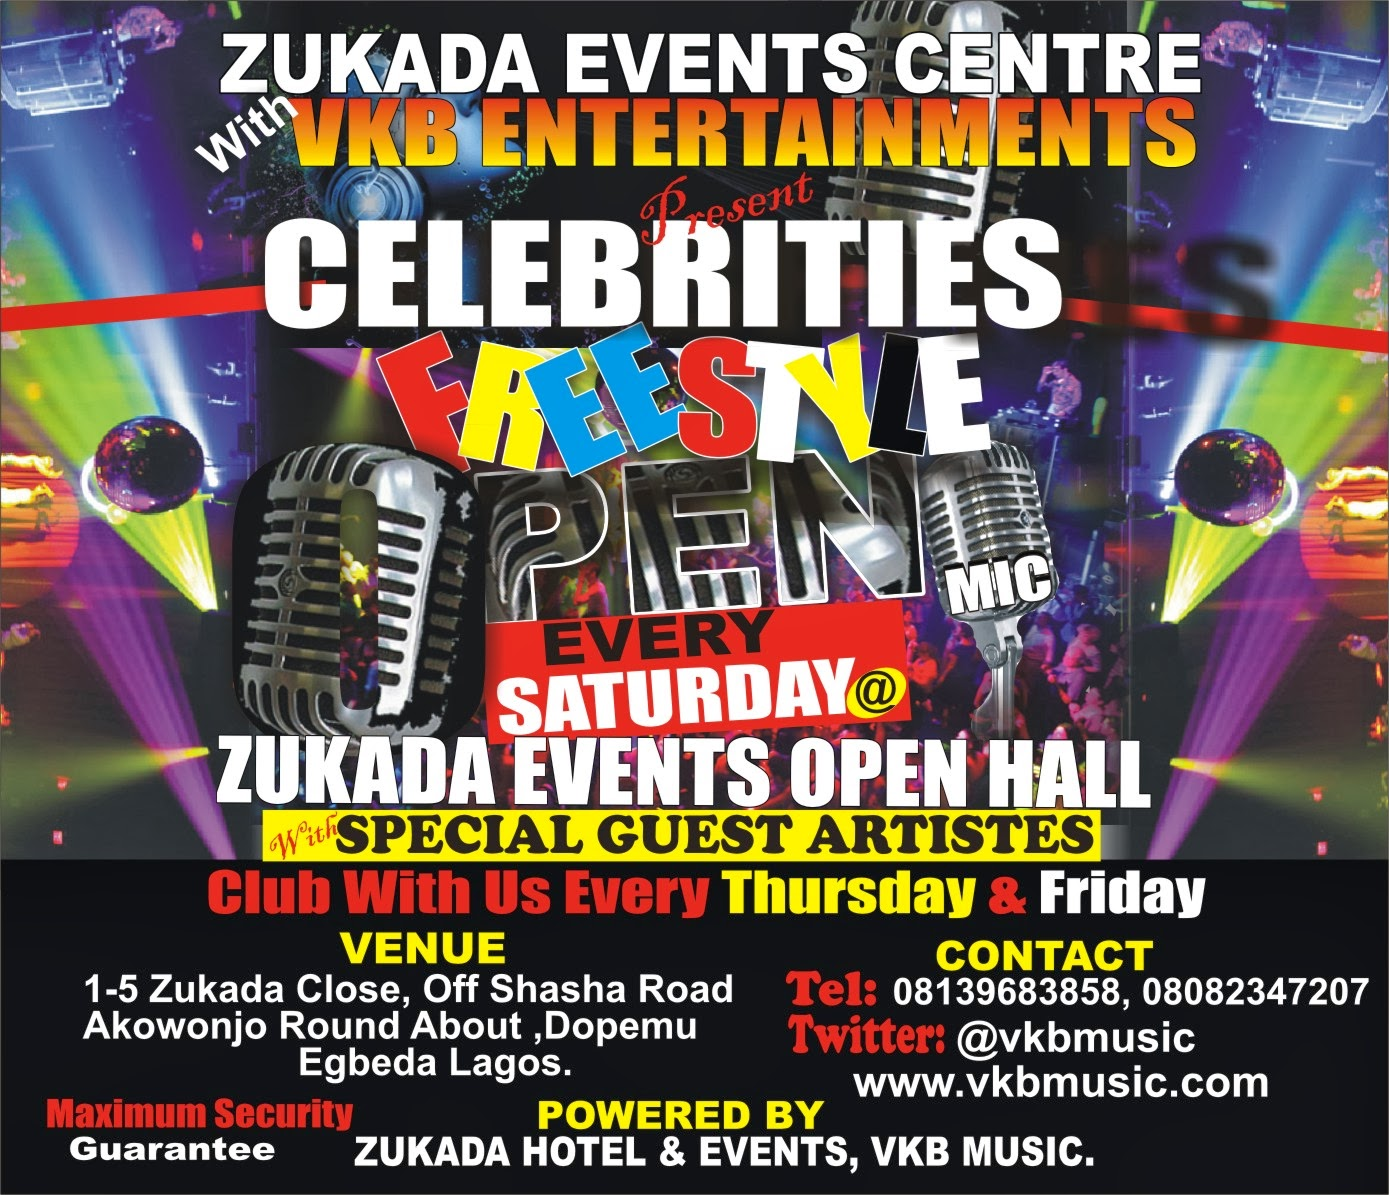 VKB ENTERTAINMENT PRESENT CELEBRITIES FREESTYLE OPEN MIC SHOW [HOSTING PLATFORM FOR CELEBRITIES].